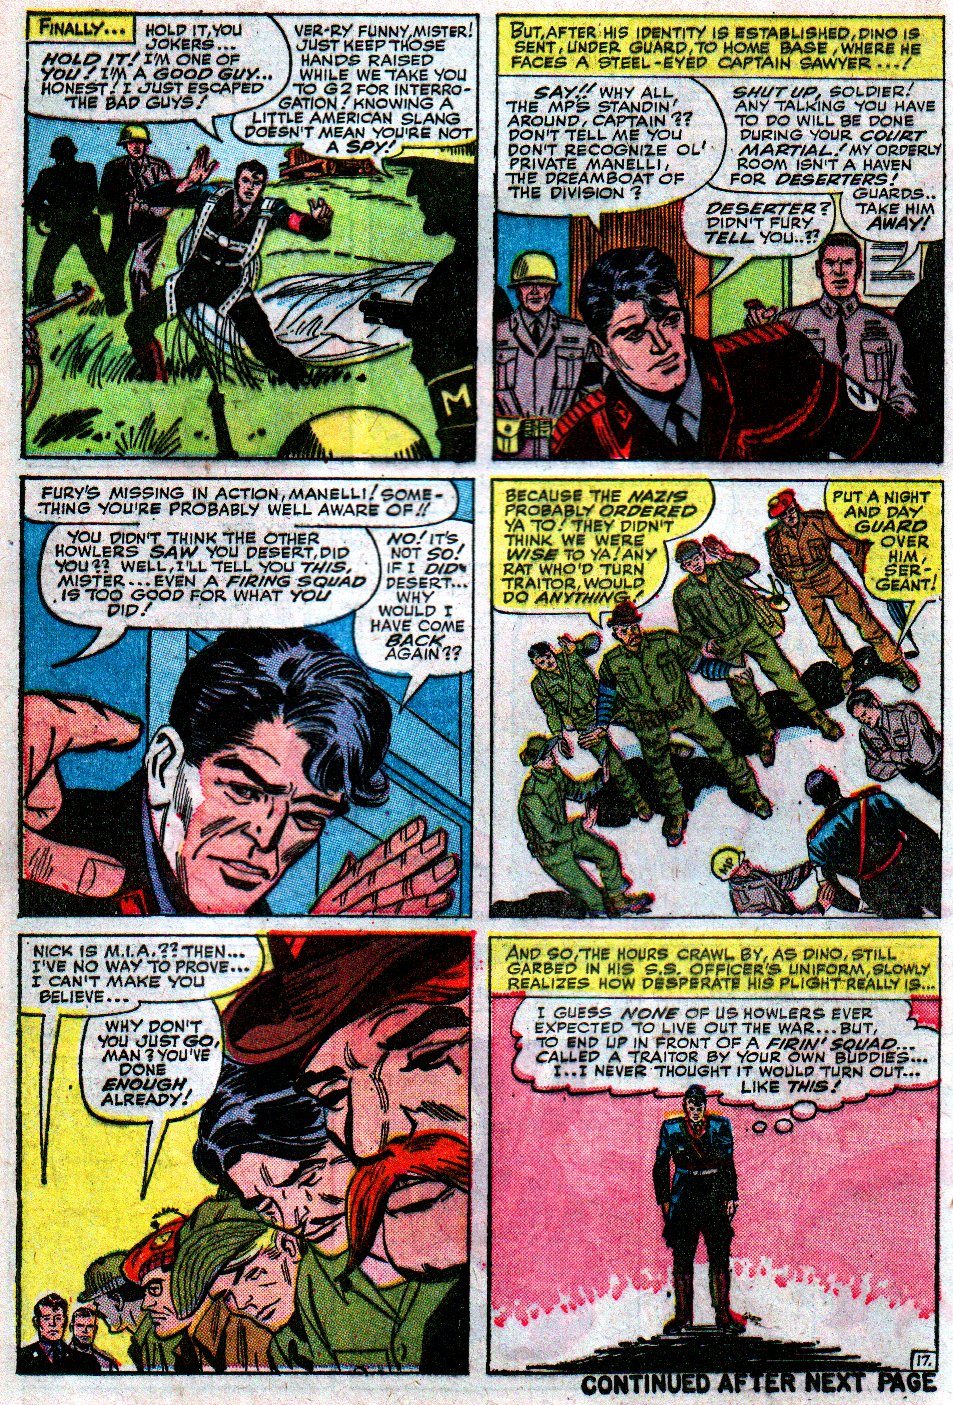 Read online Sgt. Fury comic -  Issue #12 - 24